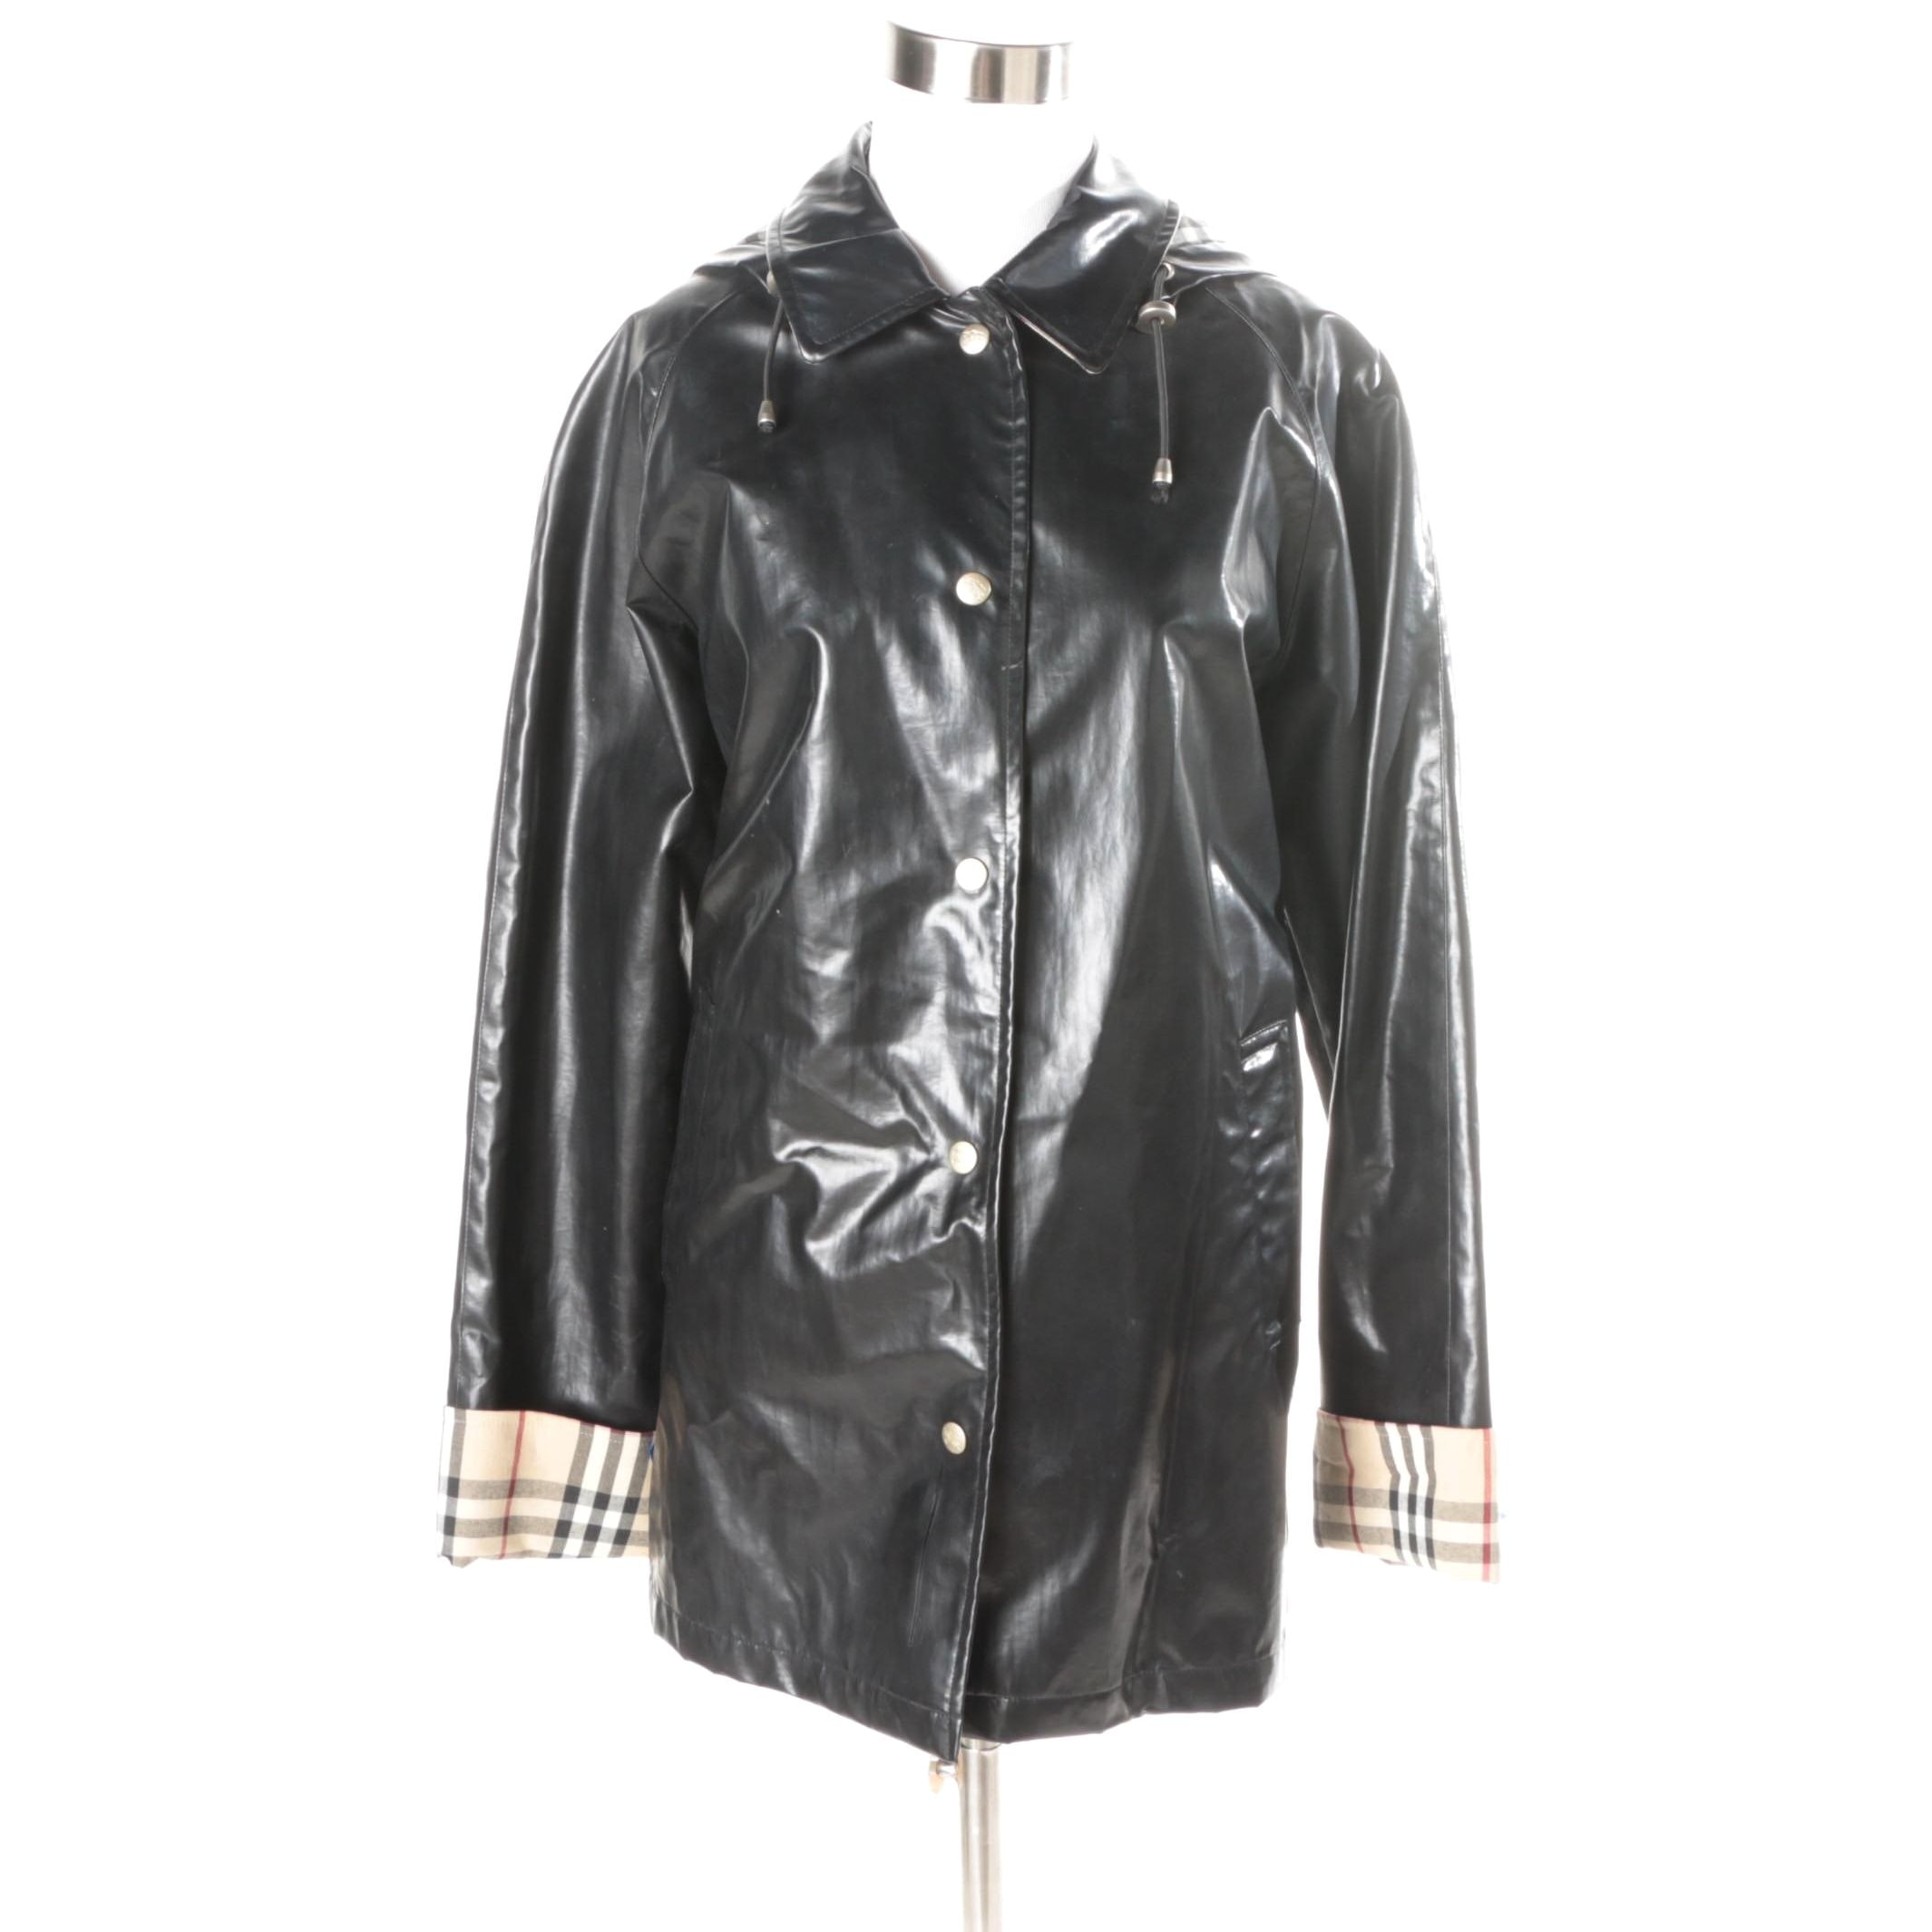 Women's Burberry Rain Jacket